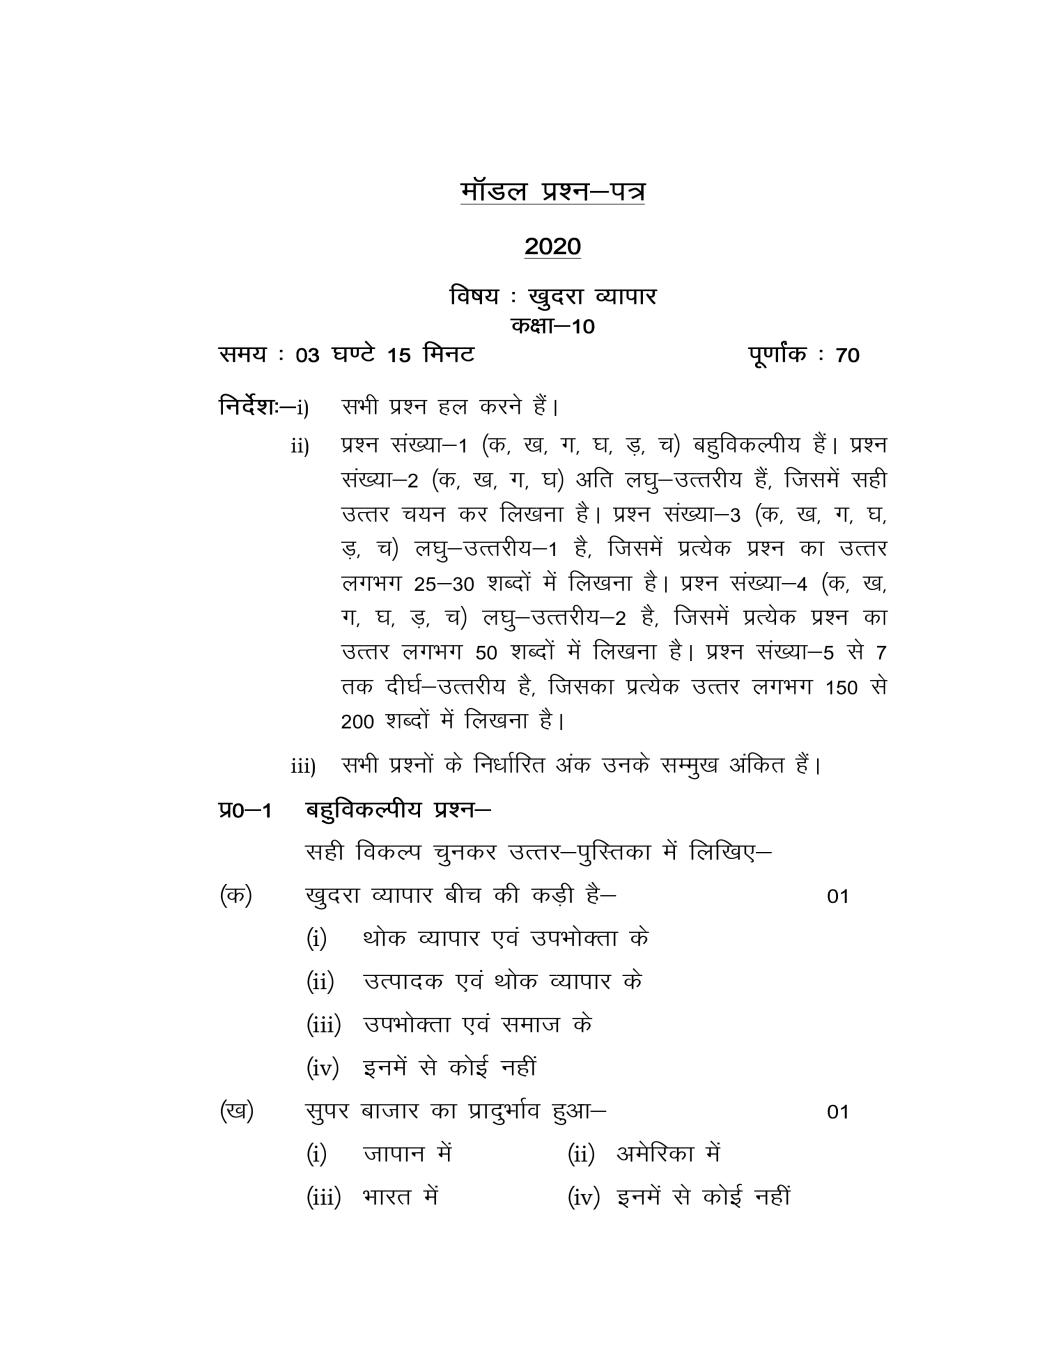 UP Board 2020 Class 10th Model Question Papers for Khudra Vyapar